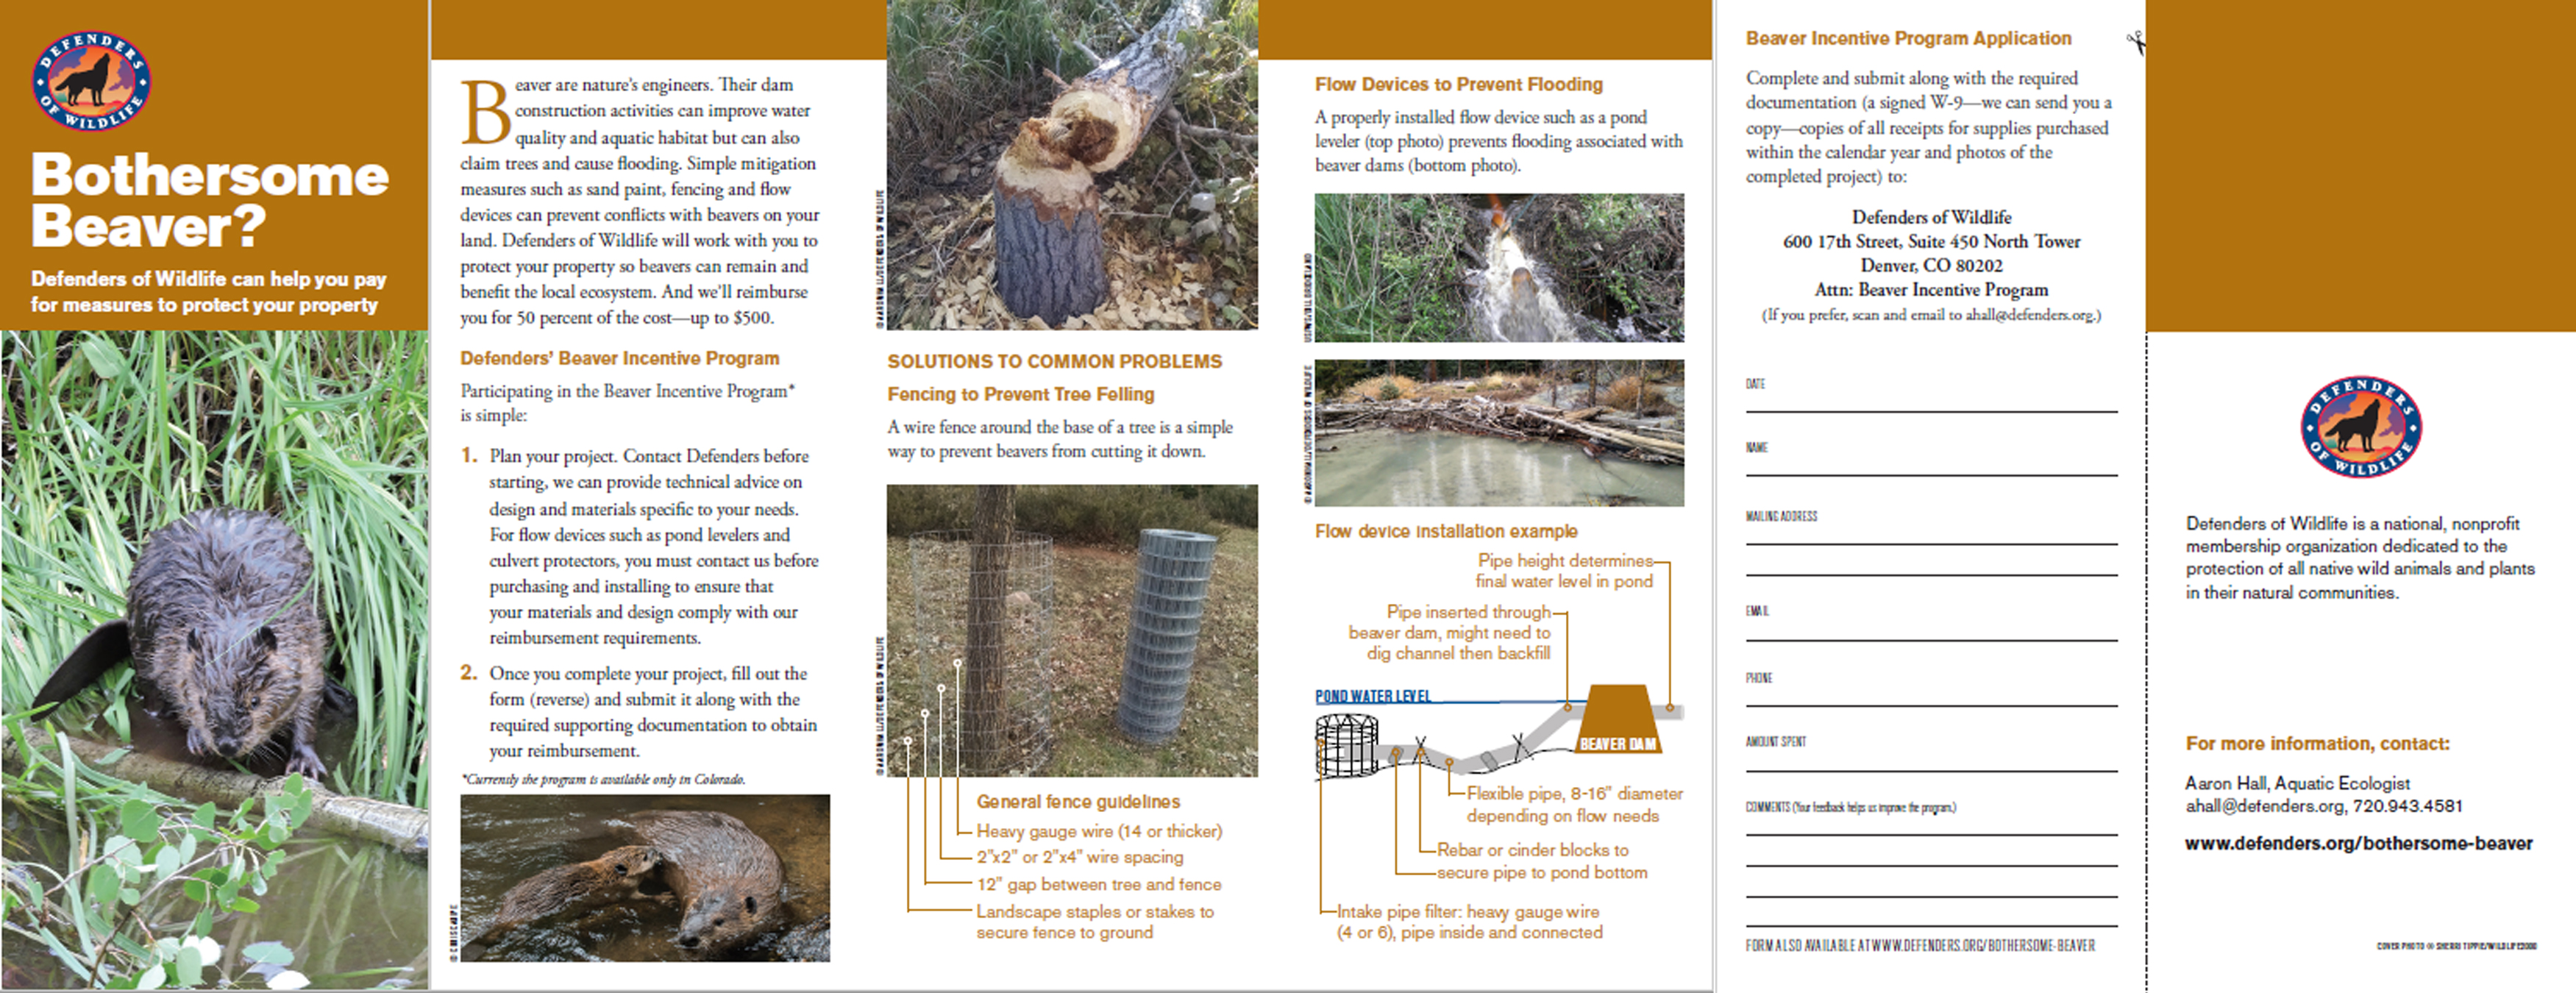 Bothersome Beaver Brochure